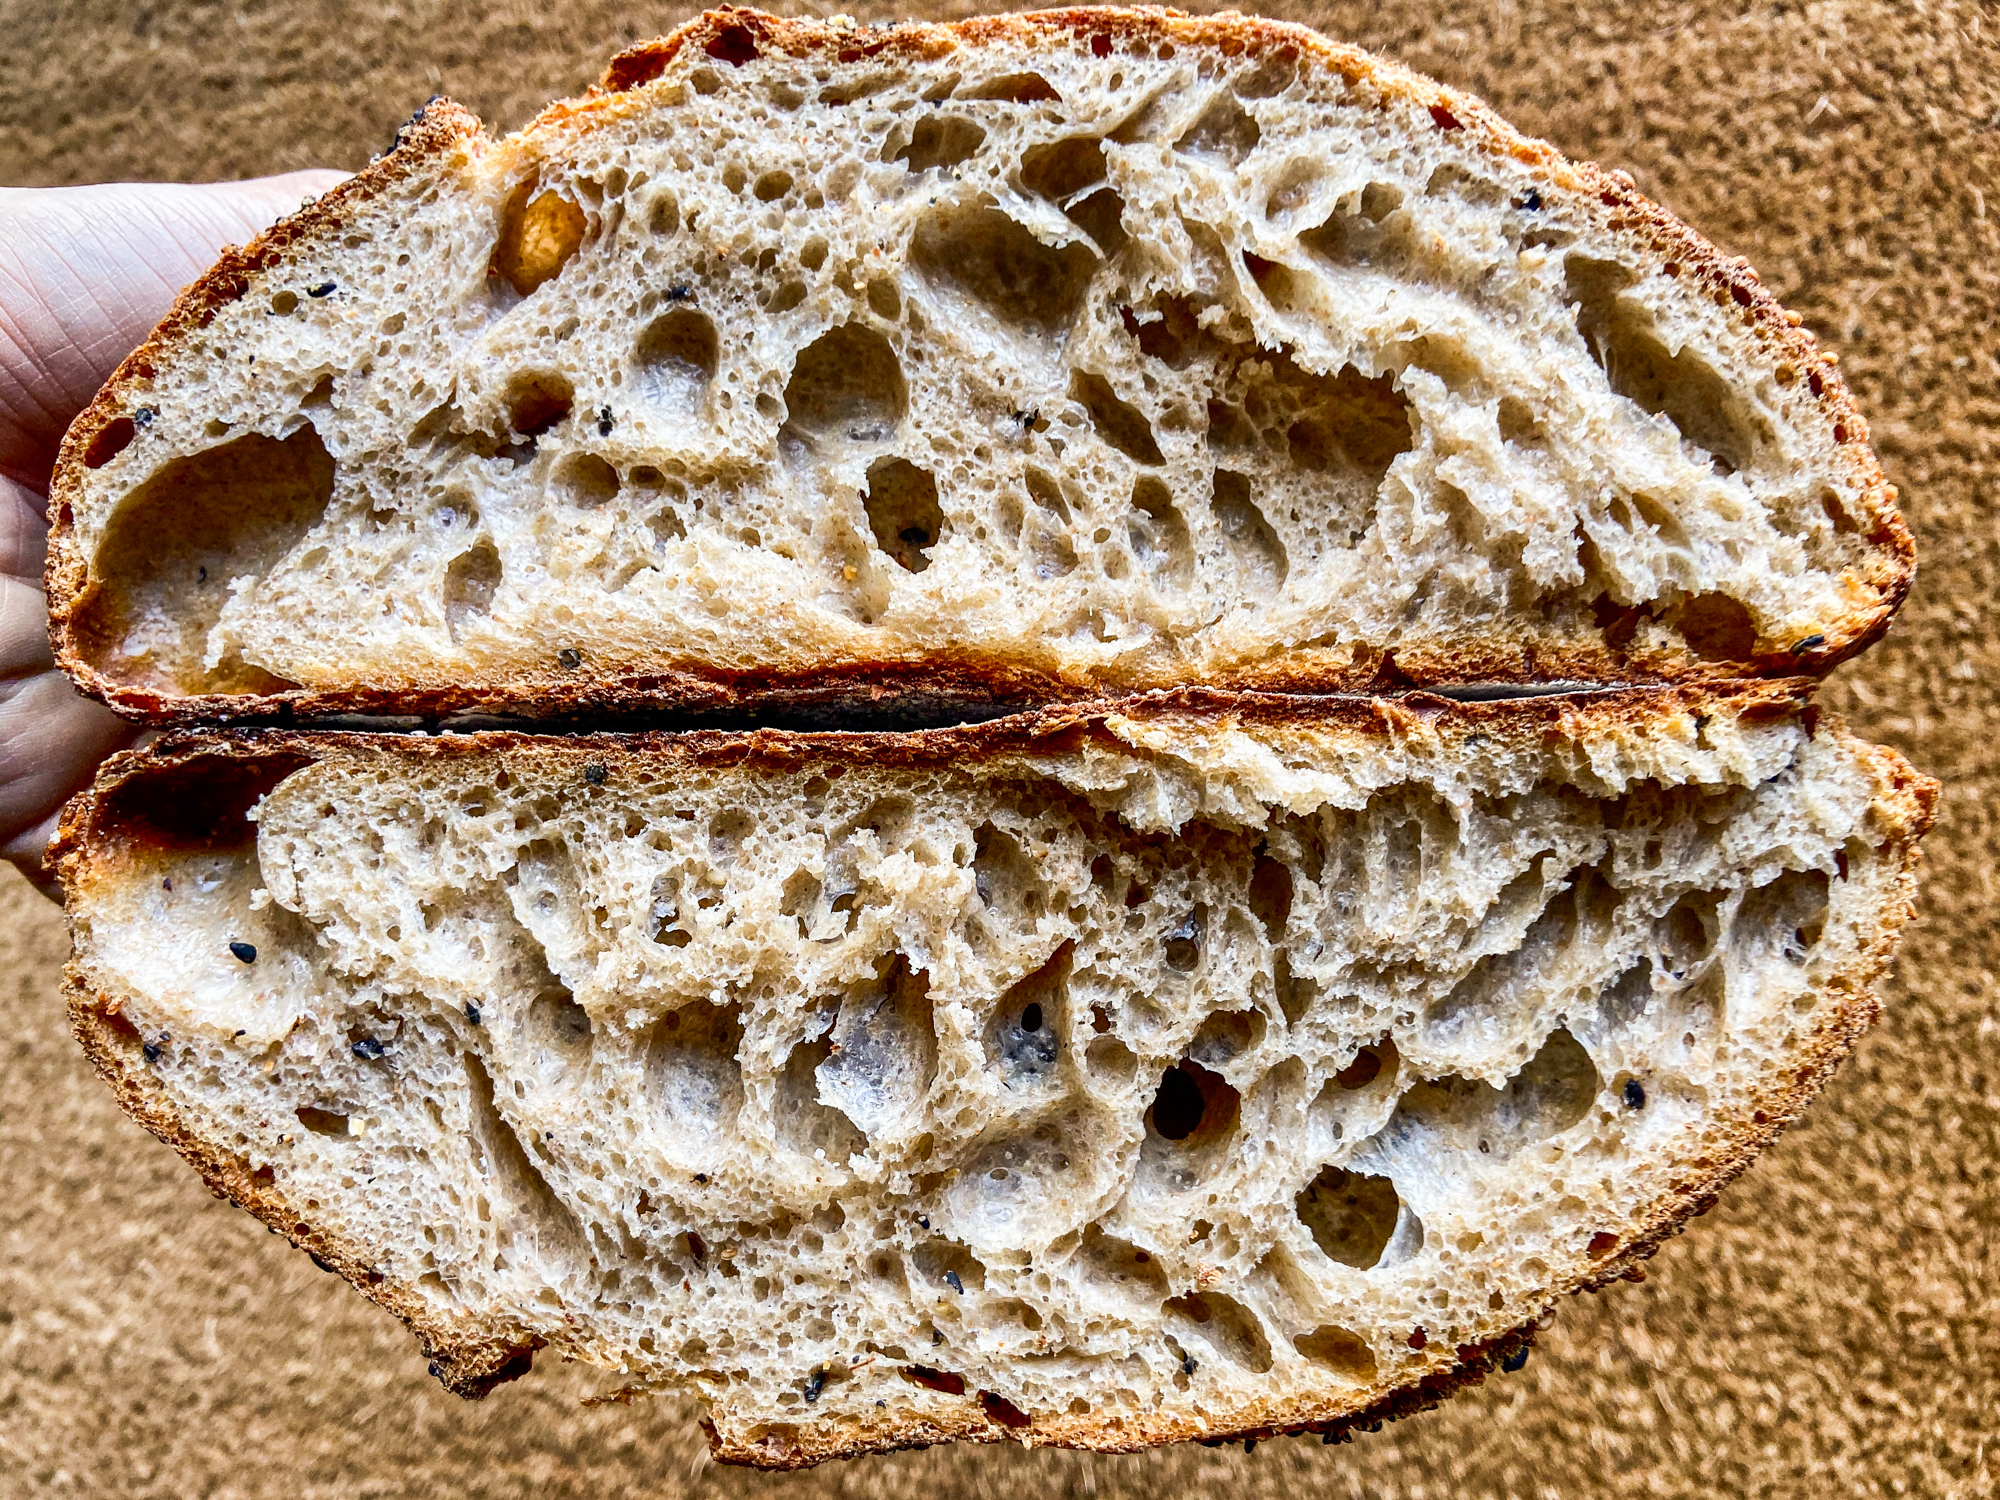 Professional Baker Will Critique Your Homemade Bread On Instagram